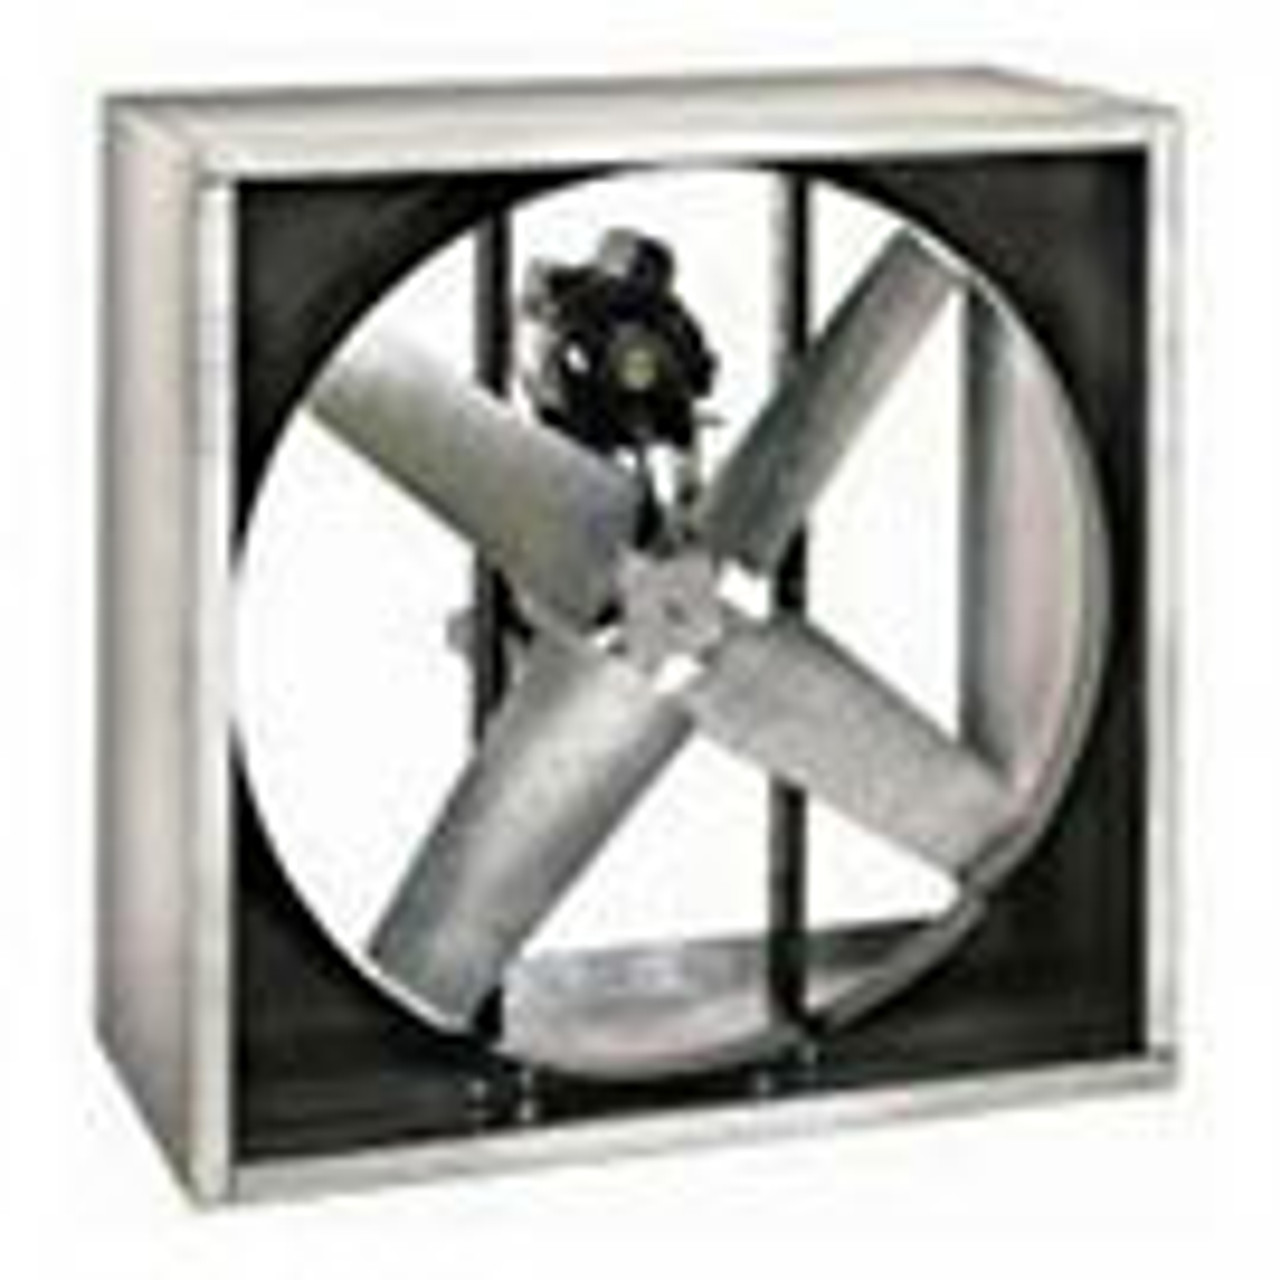 Cabinet Wall Exhaust Fans